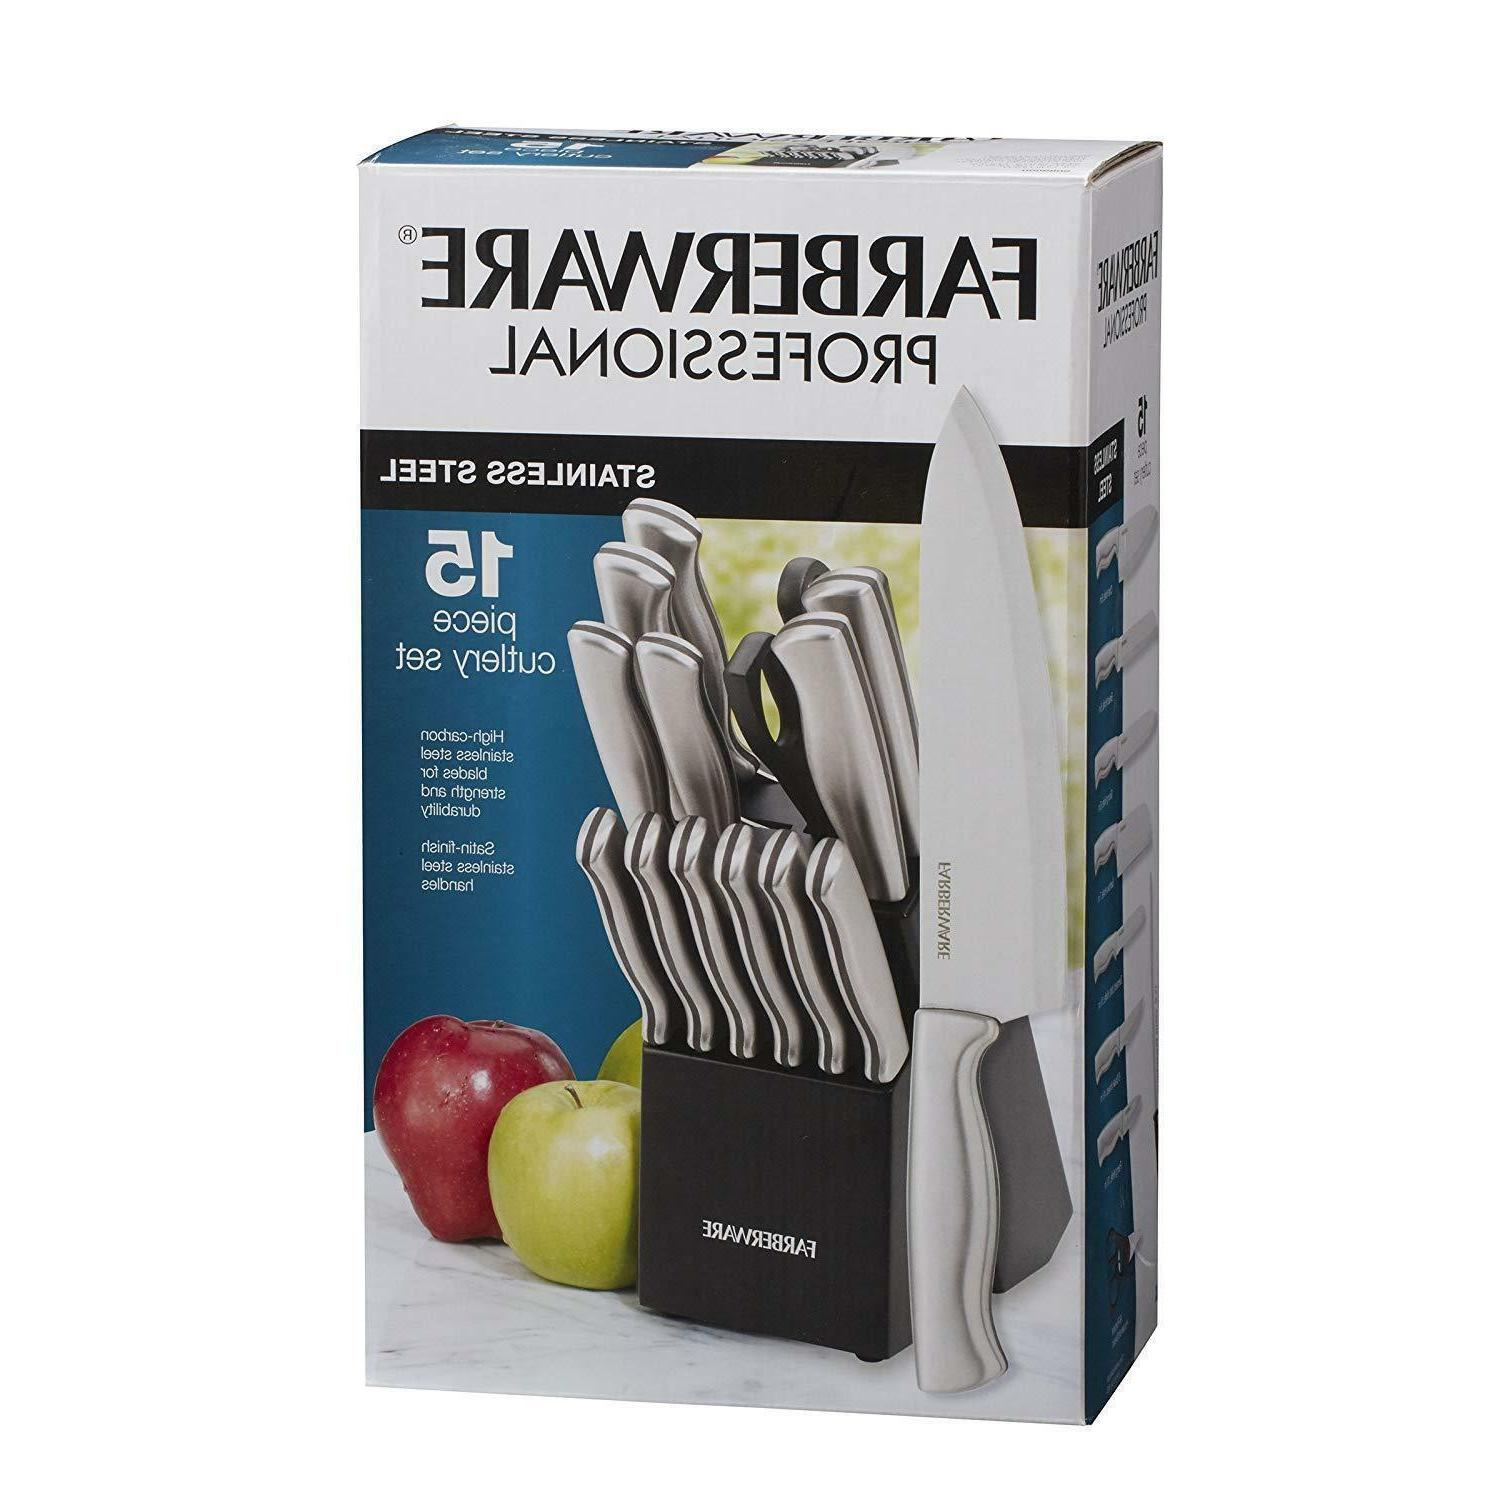 Cuisinart Collection Cutlery Set, Stainless